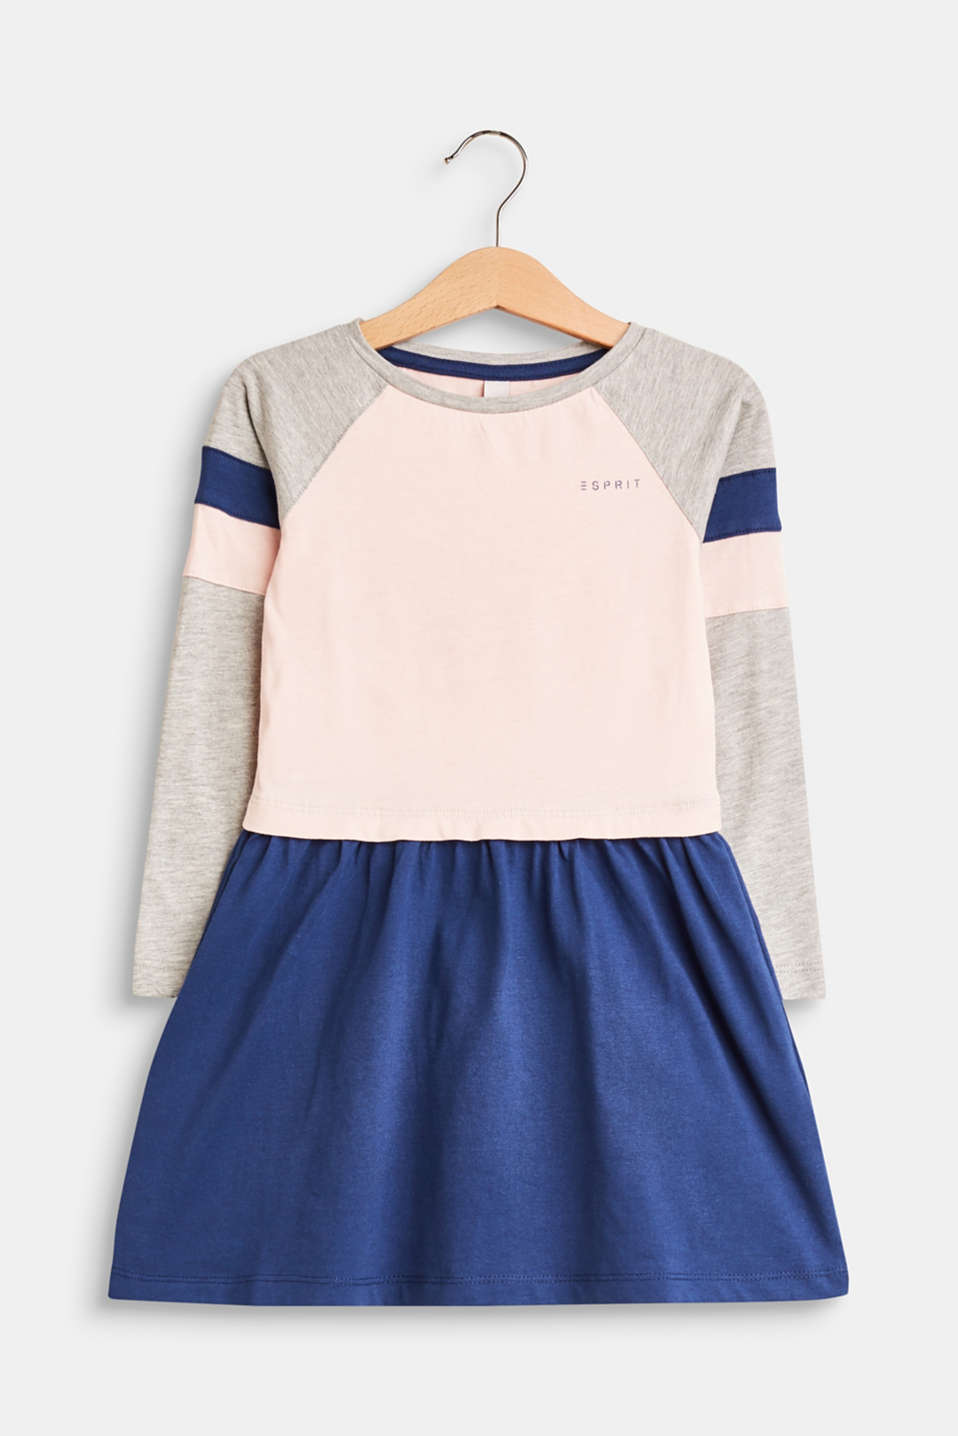 Esprit - Long sleeve colour block dress